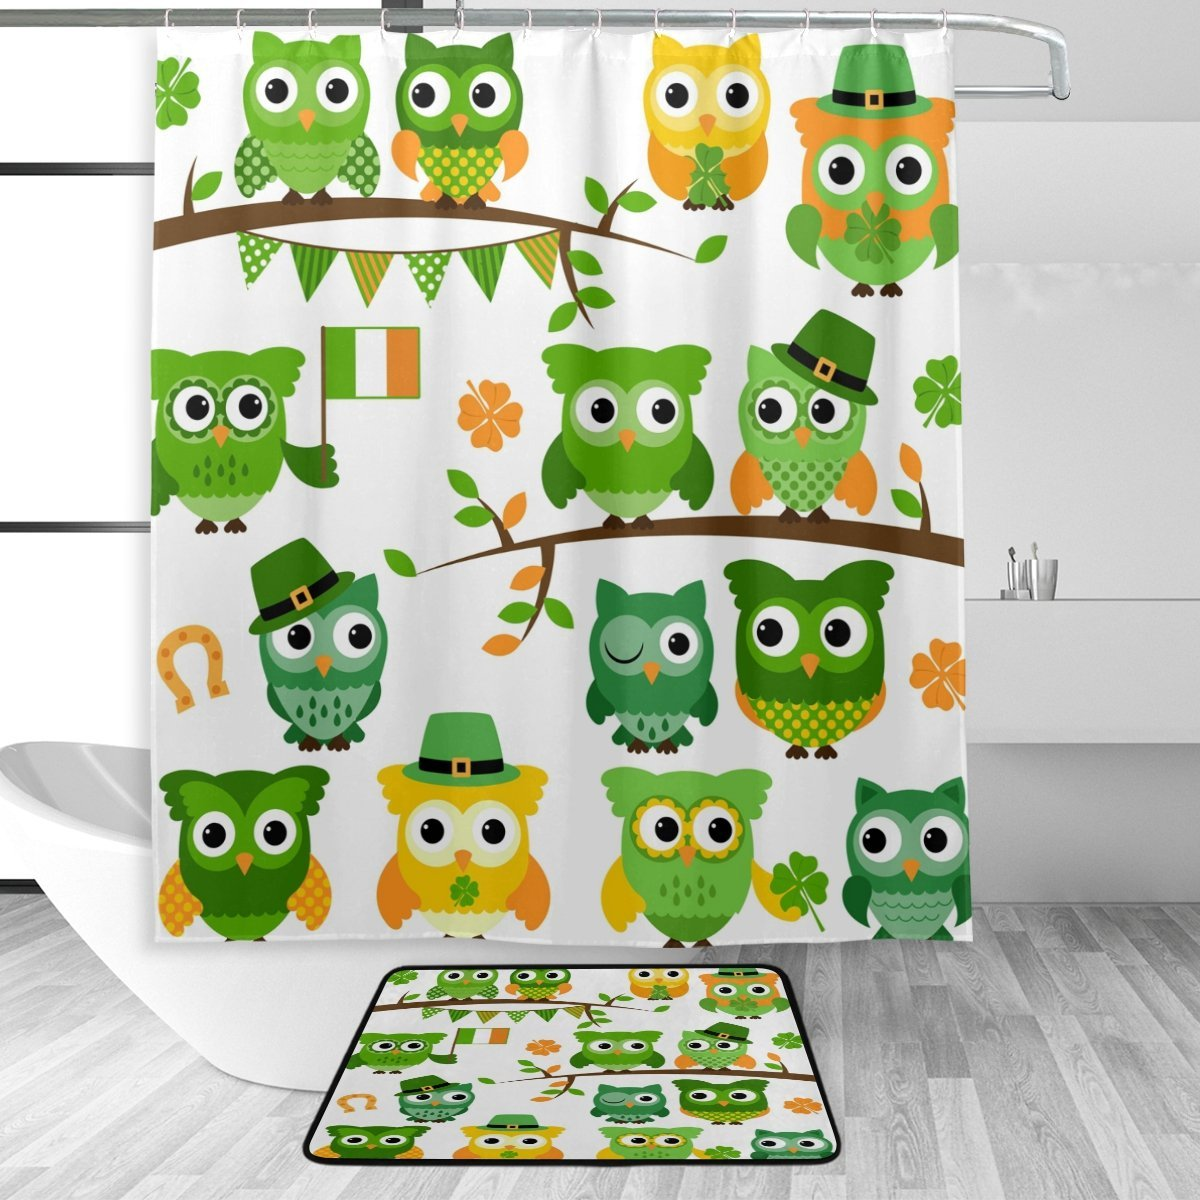 Us 16 55 31 Off St Patrick S Day Irish Owl With Shamrock Waterproof Polyester Shower Curtain With Hooks Doormat Bath Bathroom Home Decor In Shower